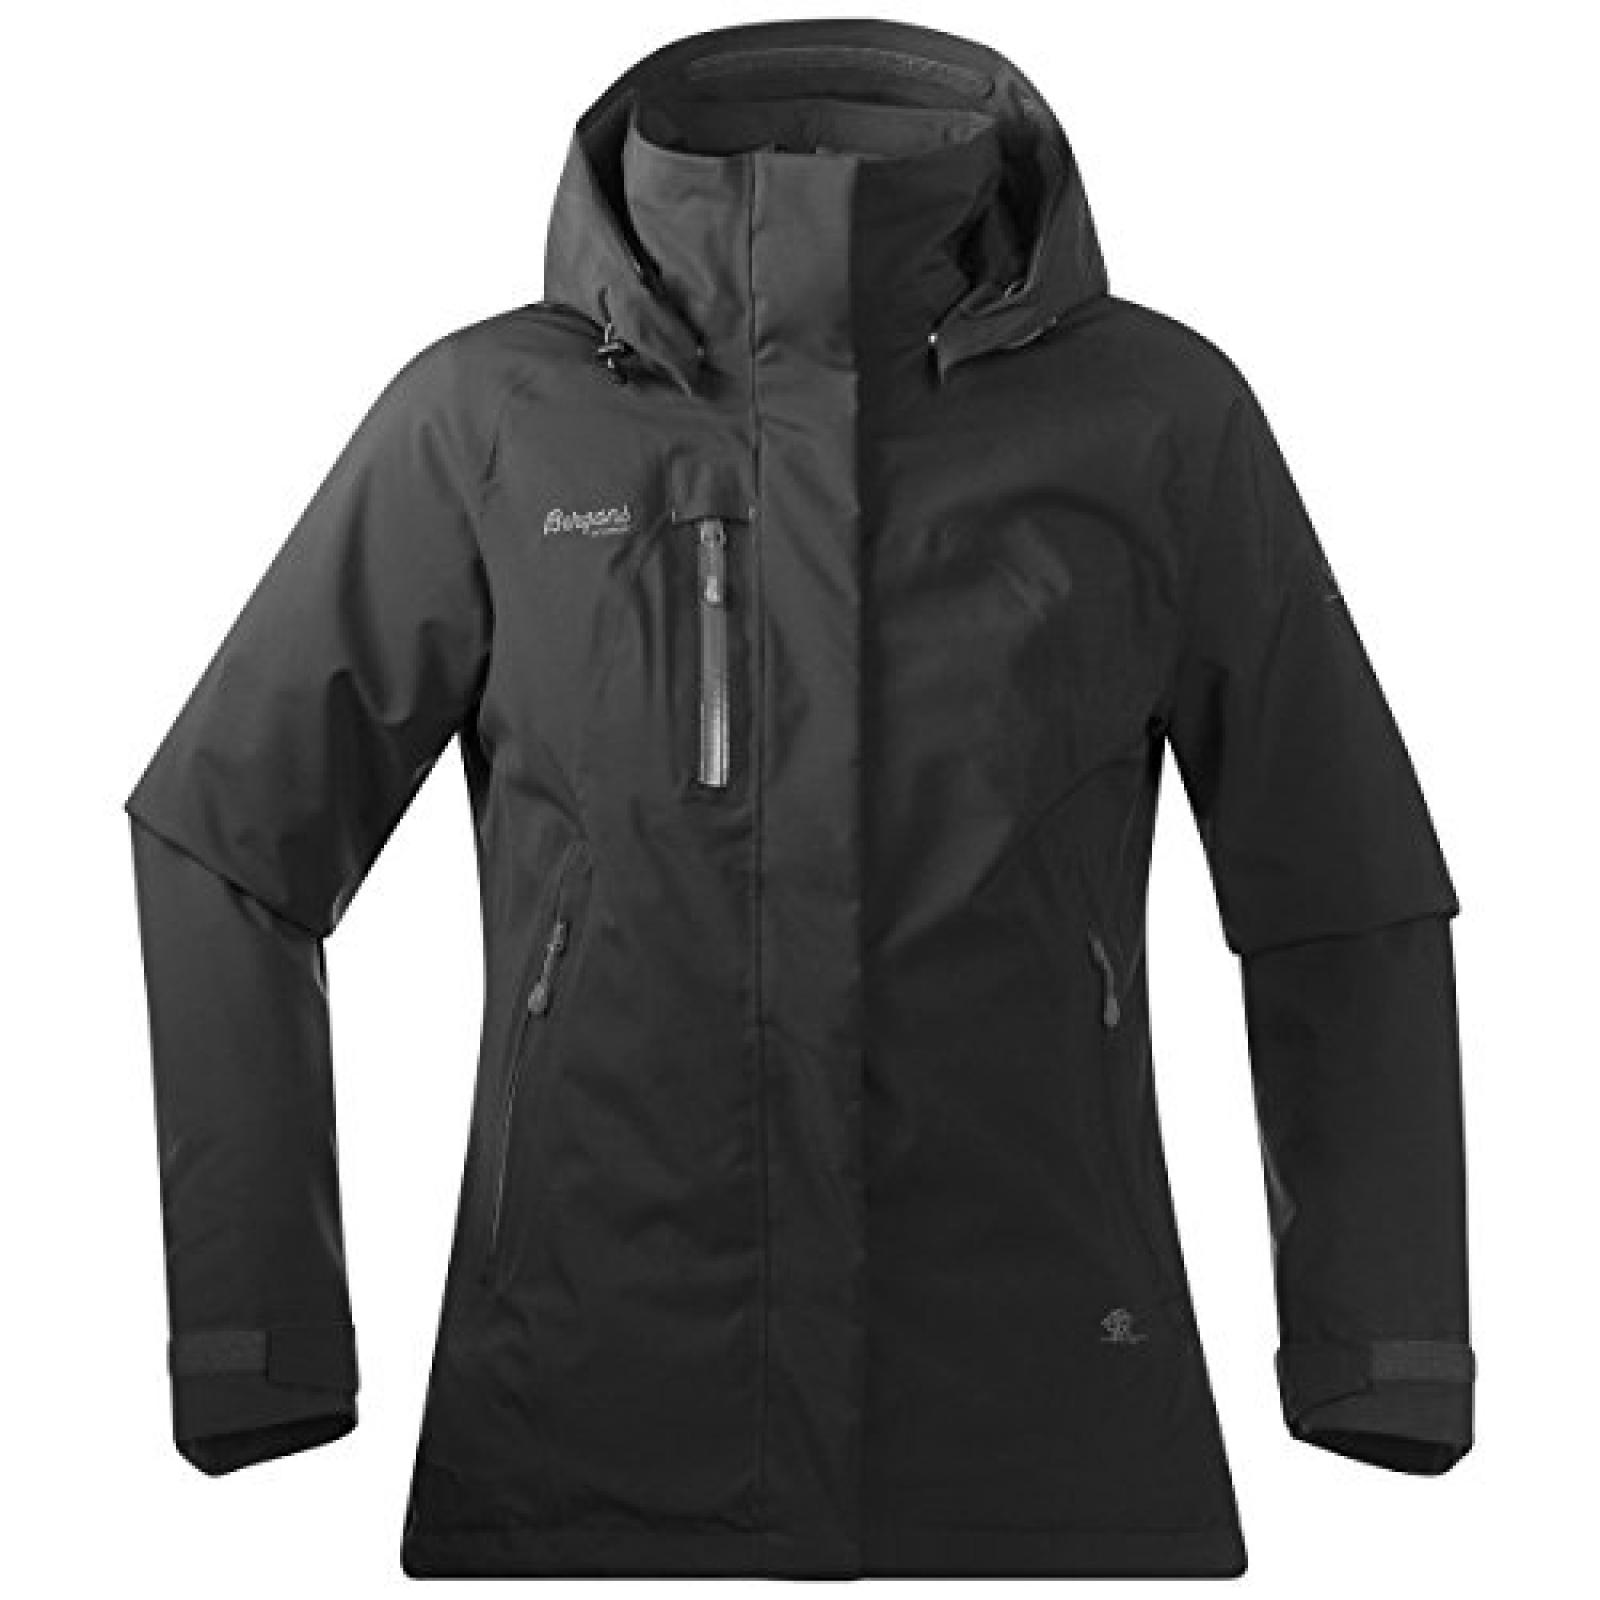 Bergans Damen Jacke Flya Insulated 7521